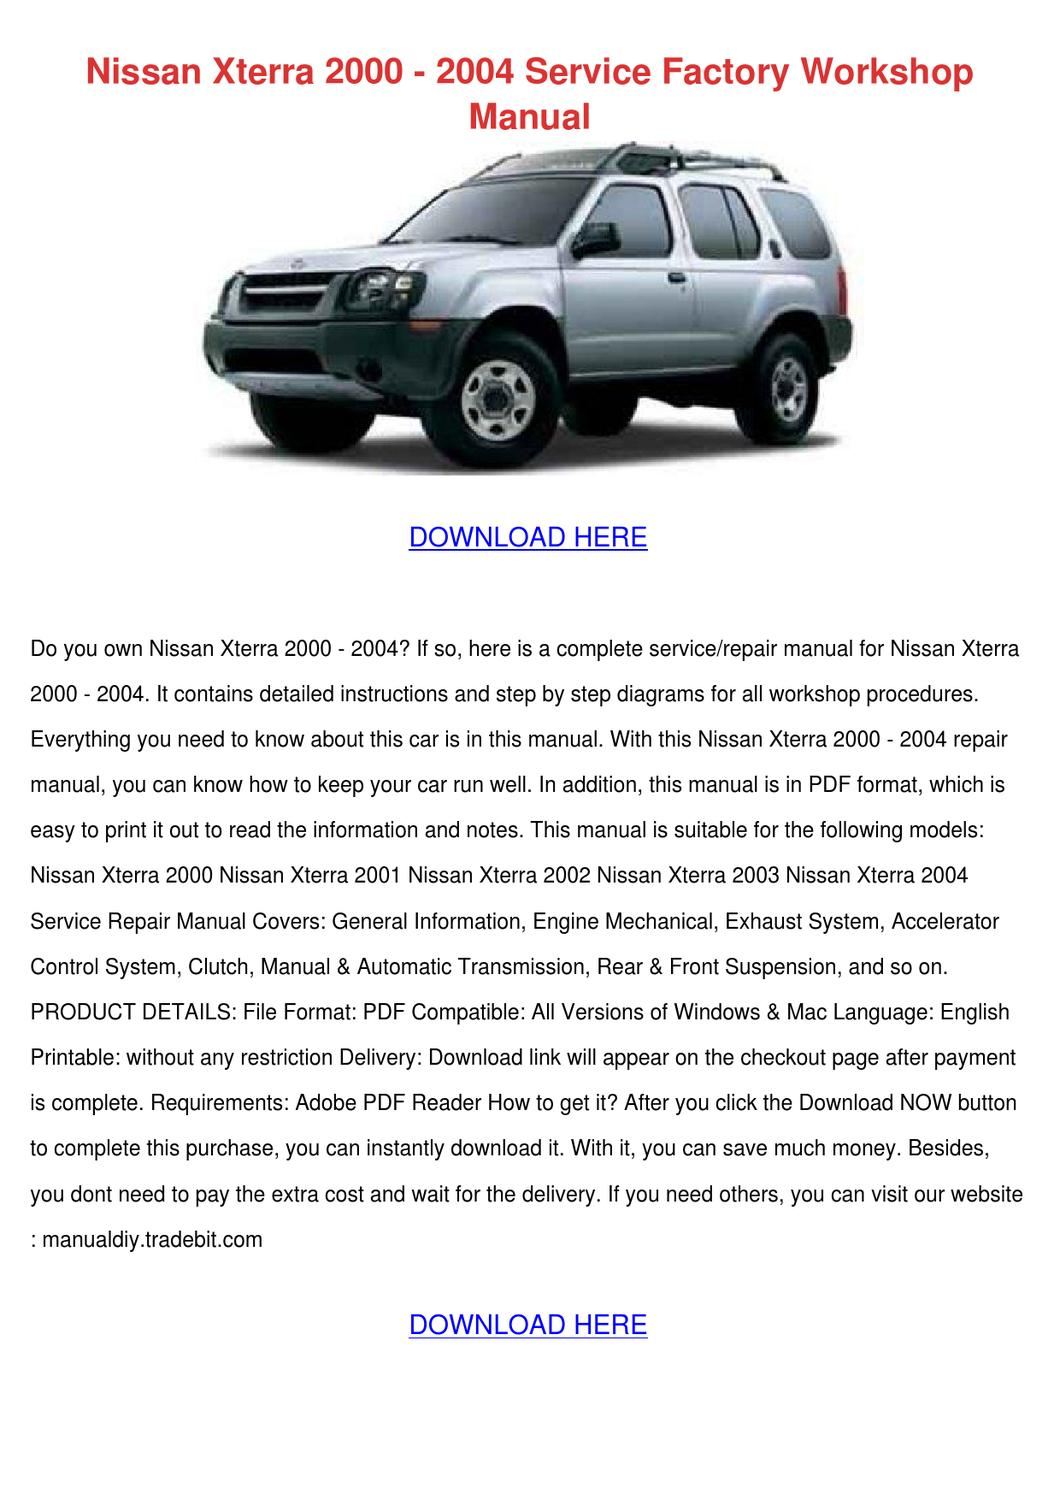 Nissan Xterra 2000 2004 Service Factory Works by VernitaSummers ...